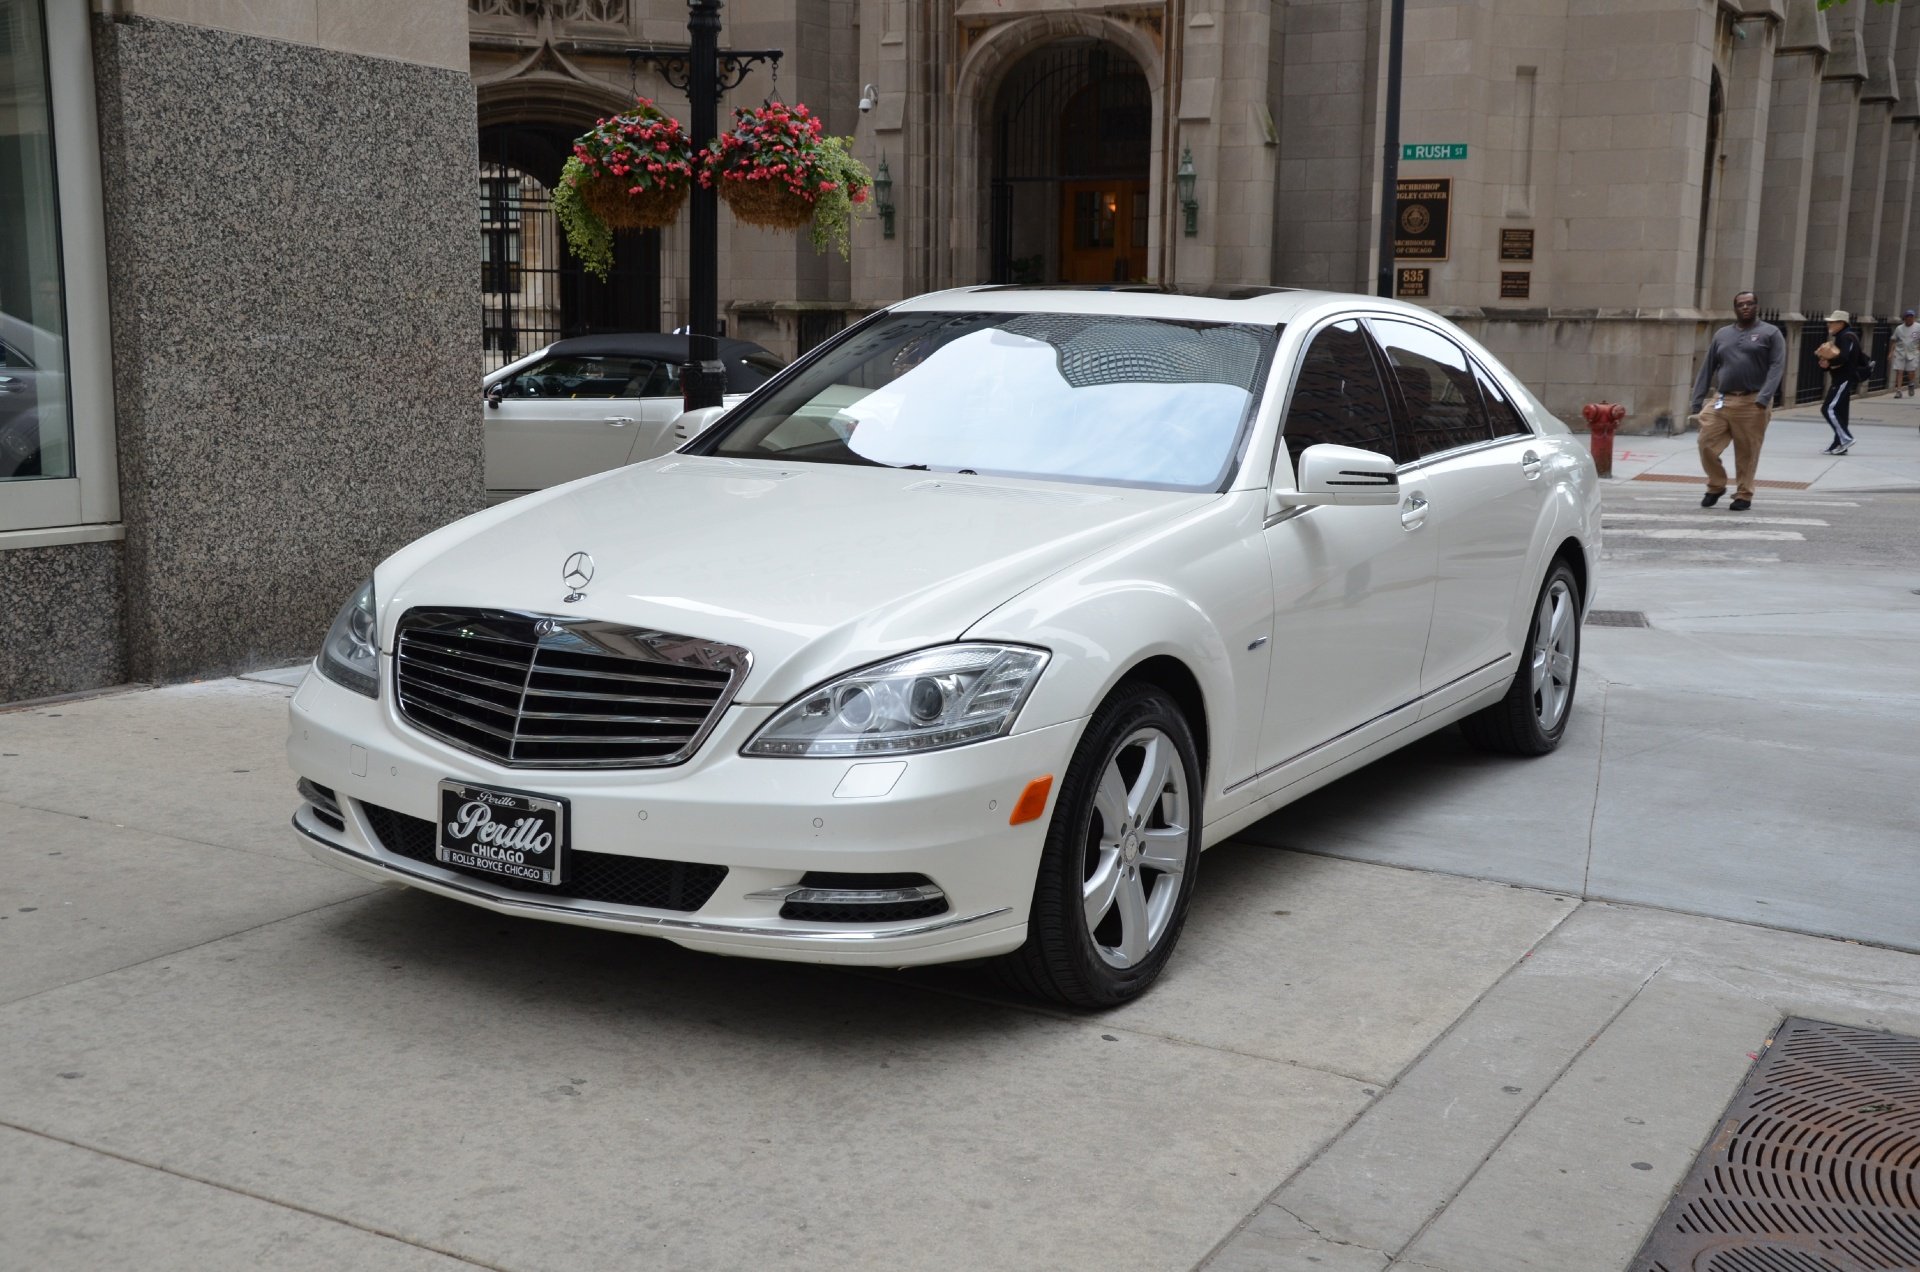 2012 mercedes benz s class s550 4matic stock m419a for for Mercedes benz chicago dealers